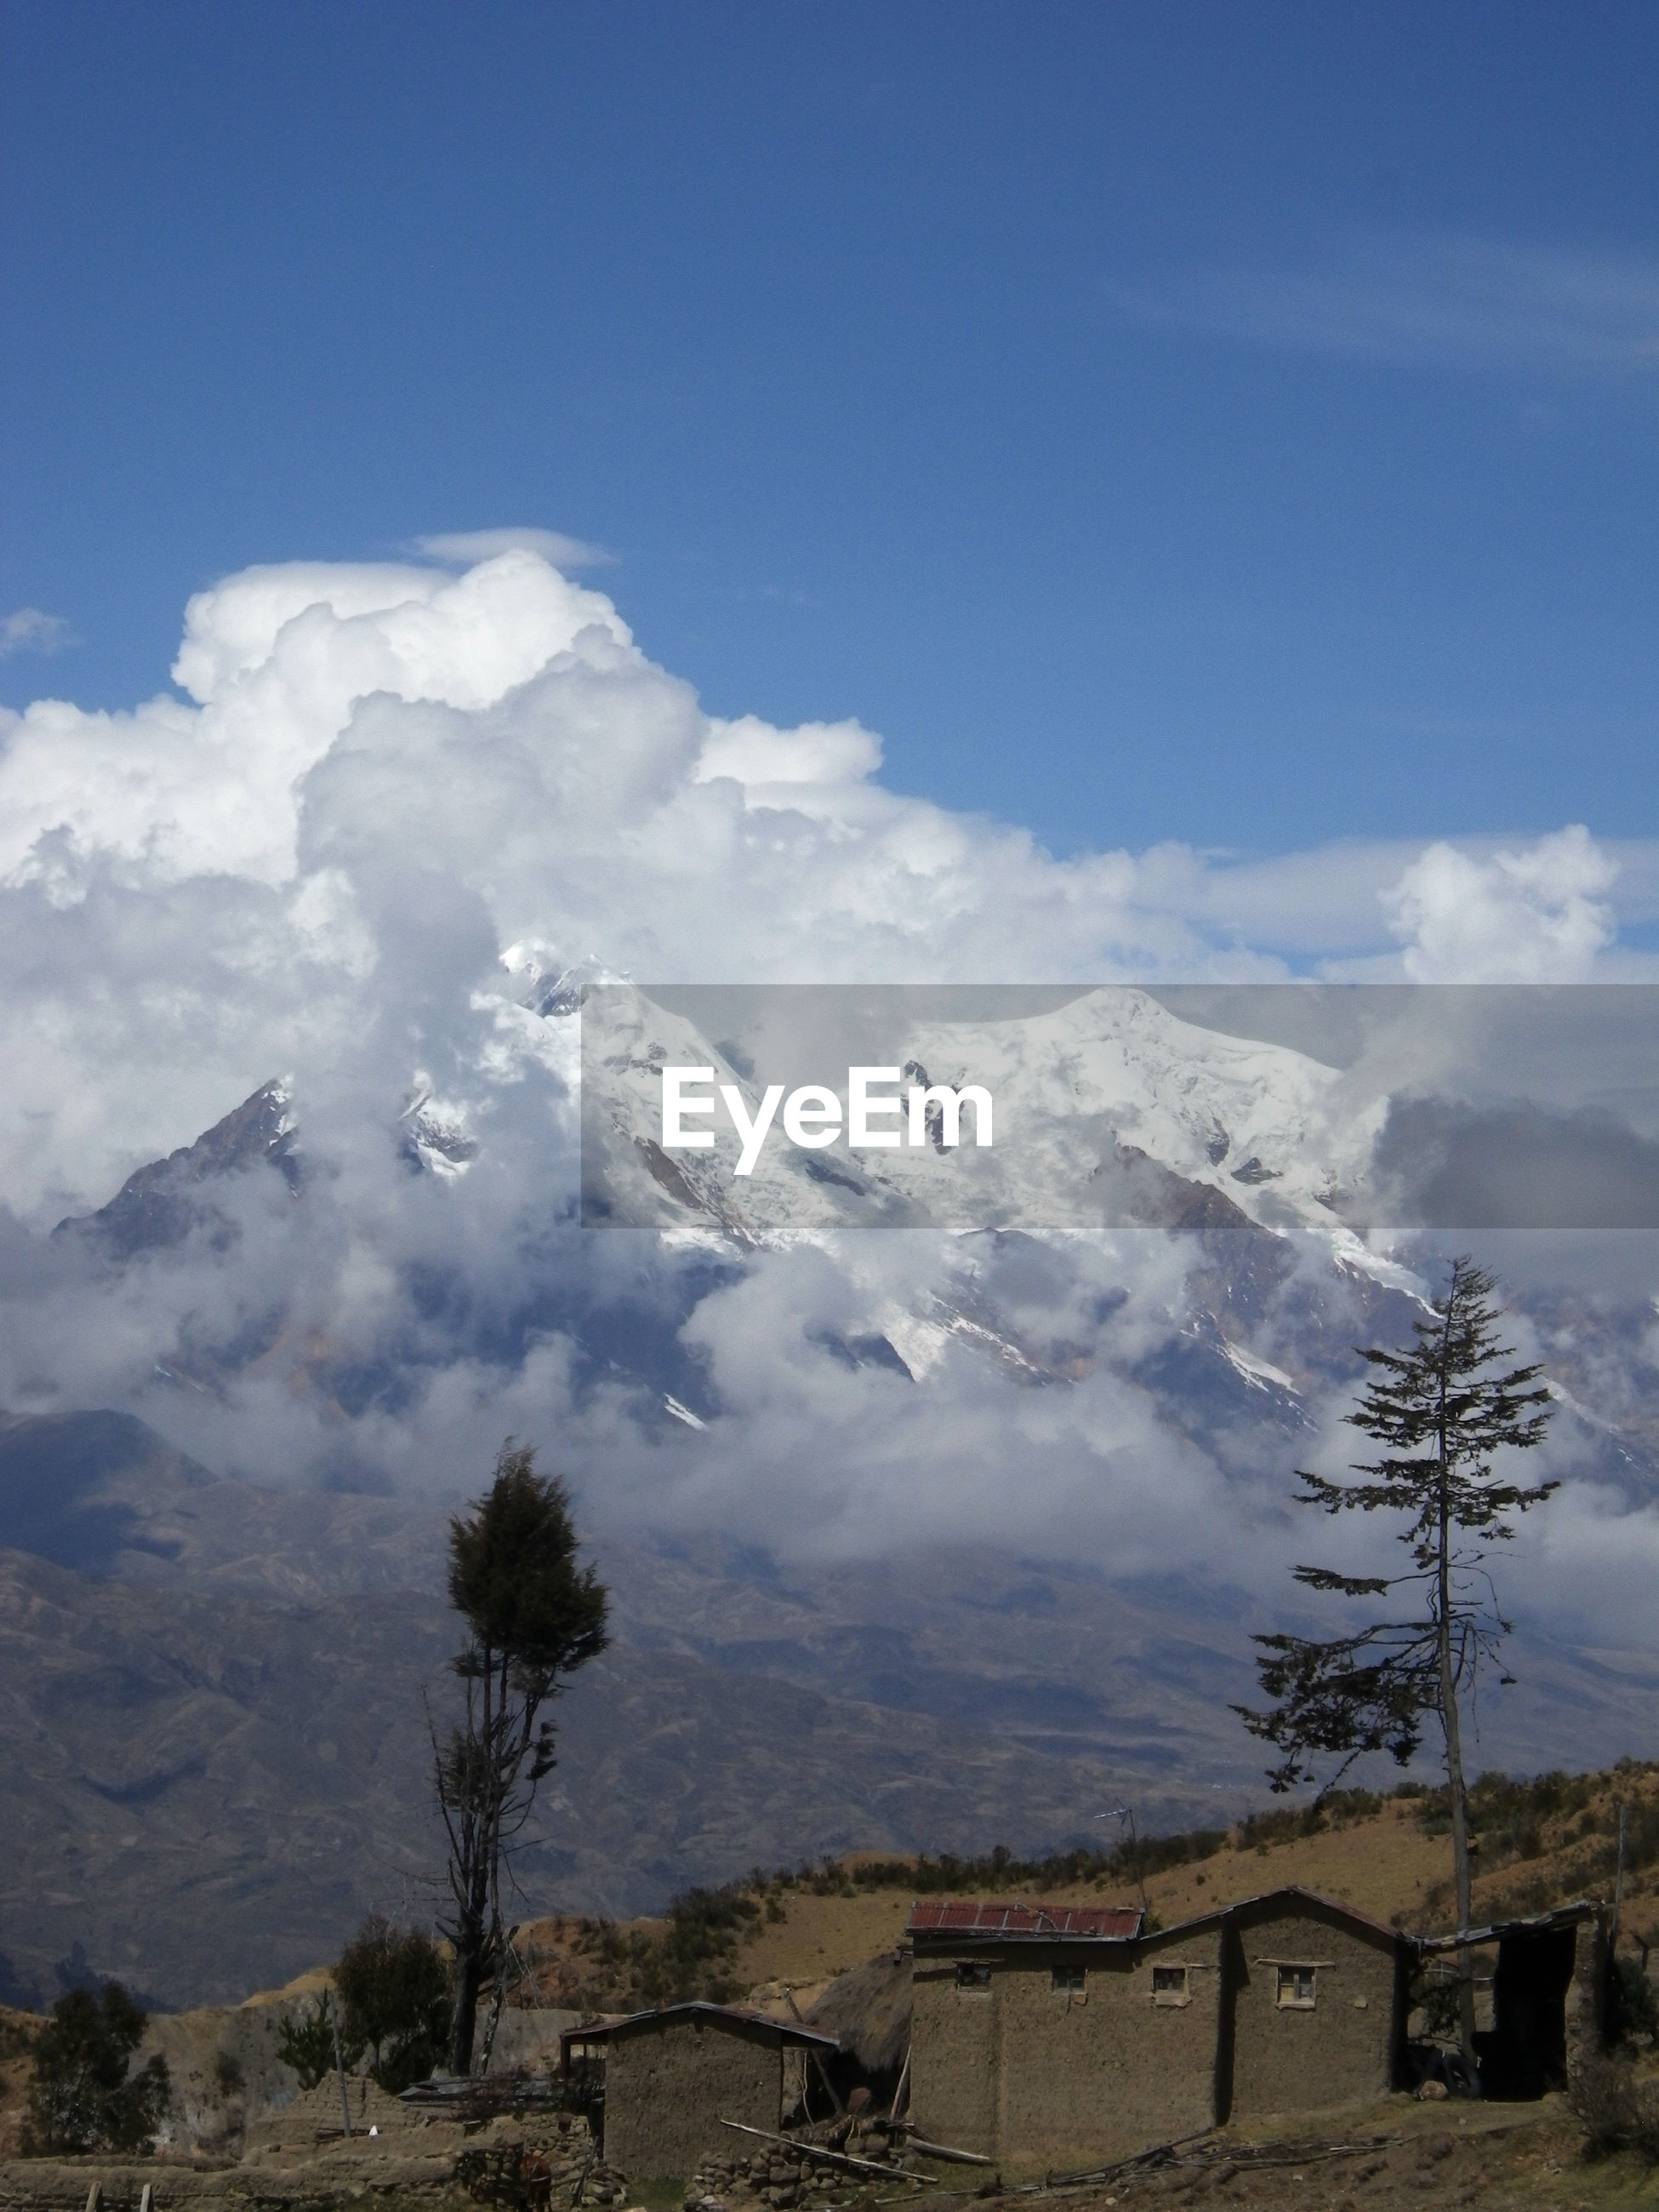 SCENIC VIEW OF SNOWCAPPED MOUNTAINS AND SKY